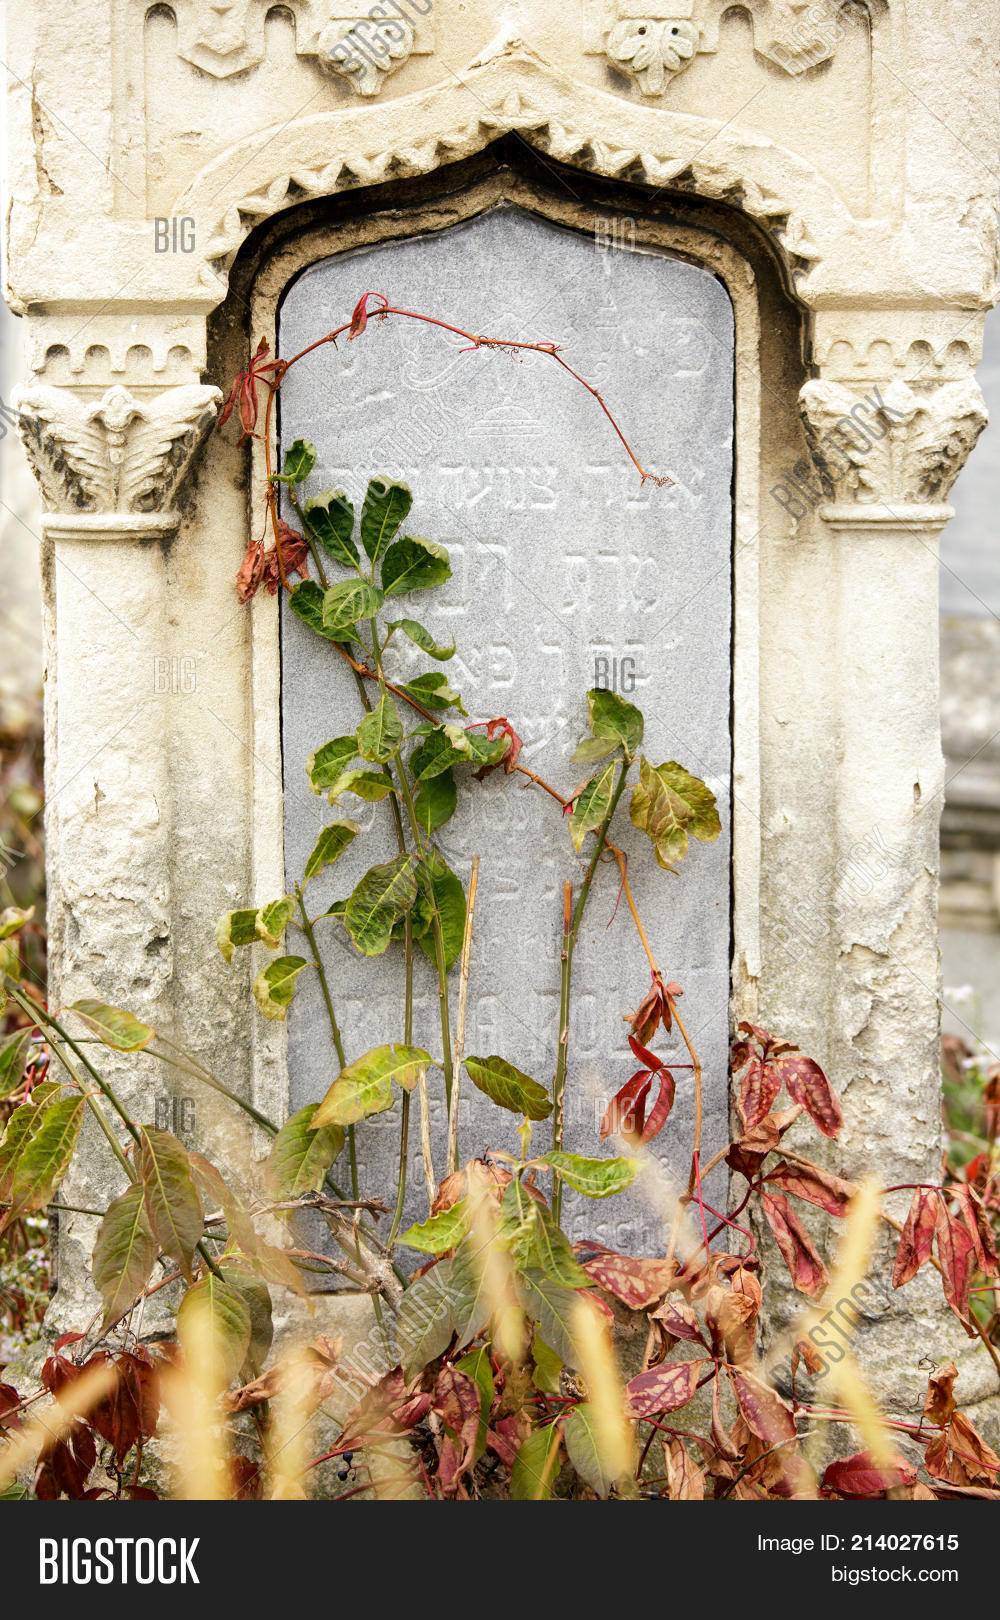 Old Jewish Cemetery Image Photo Free Trial Bigstock